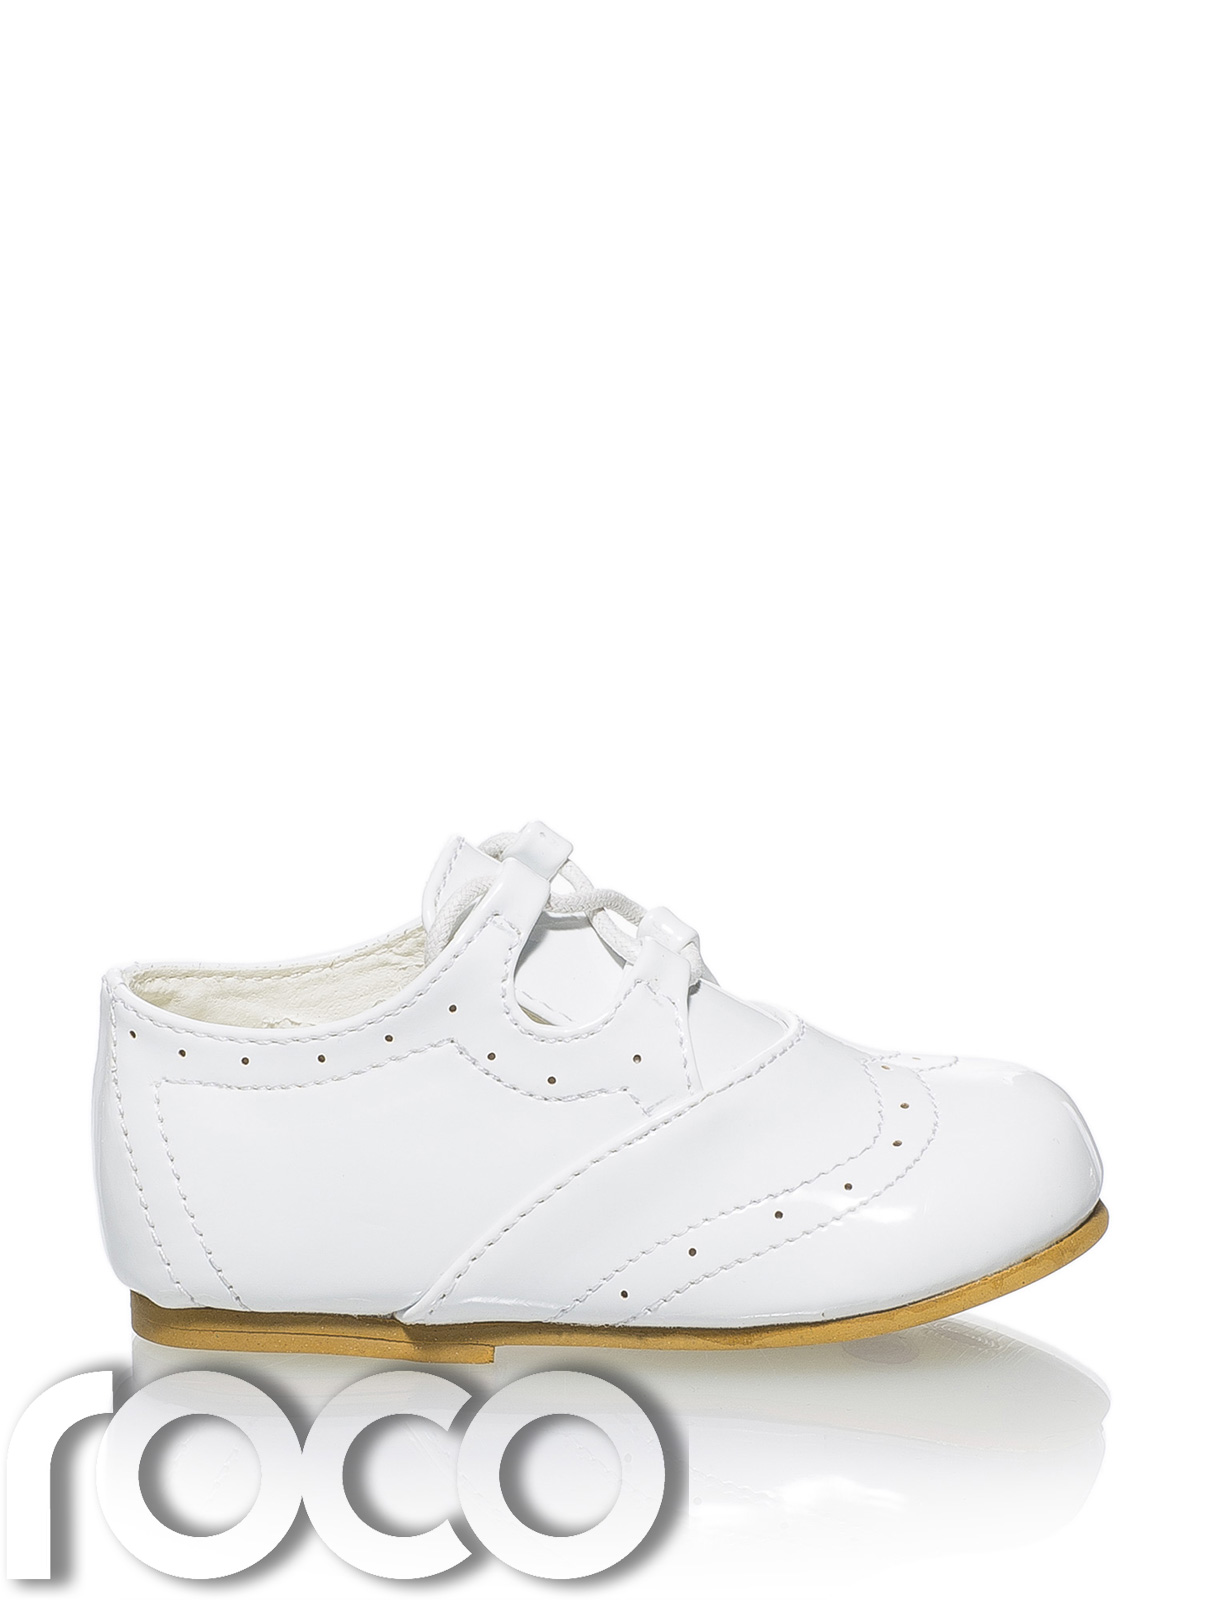 Baby Boys White Shoes, Baby Boys Christening Shoes